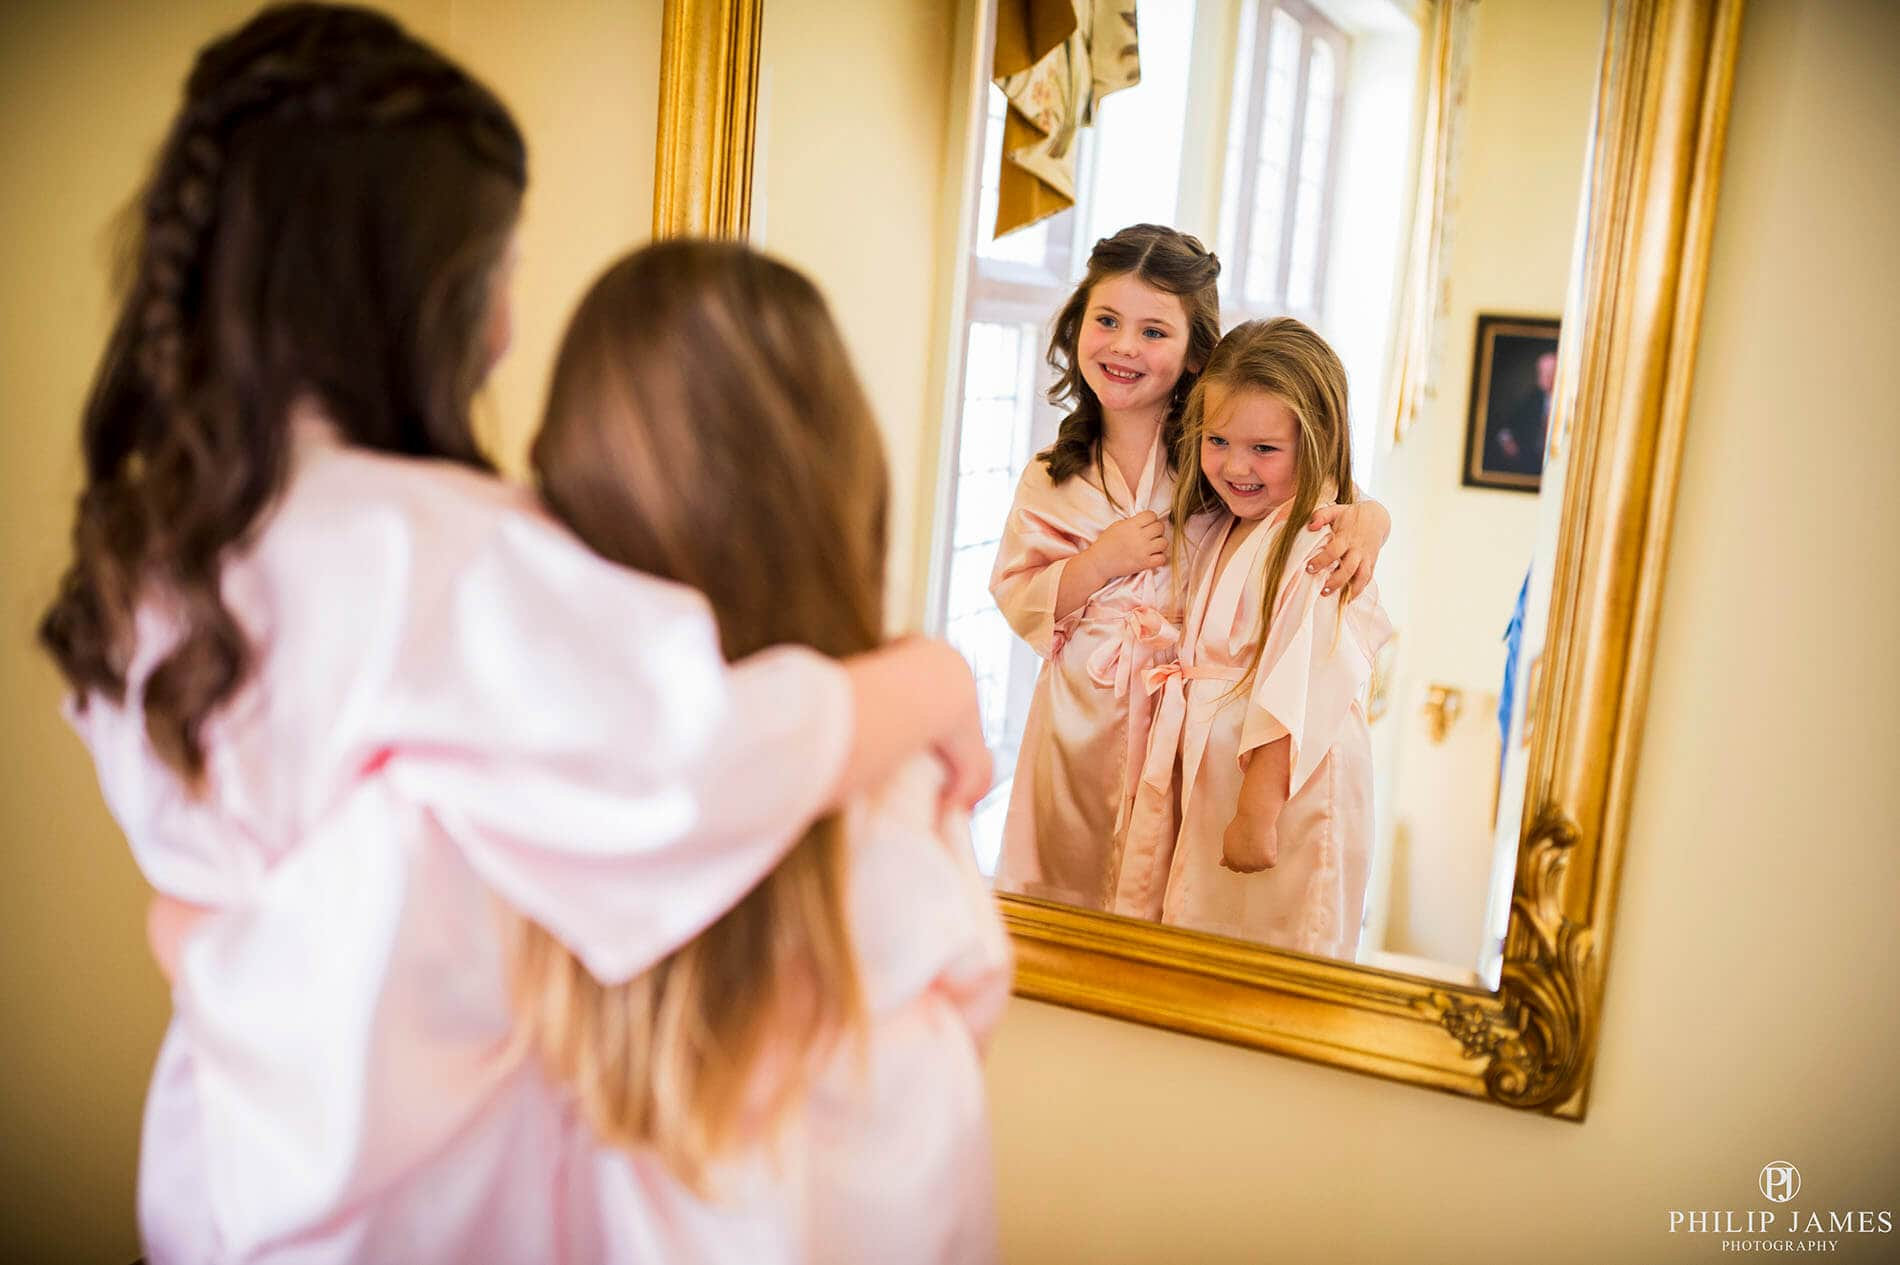 Colshaw Hall Wedding Photographer - Philip James covers Birmingham, The West Midlands, Solihull, Warwickshire and all over the UK. Wedding photography Birmingham is my passion